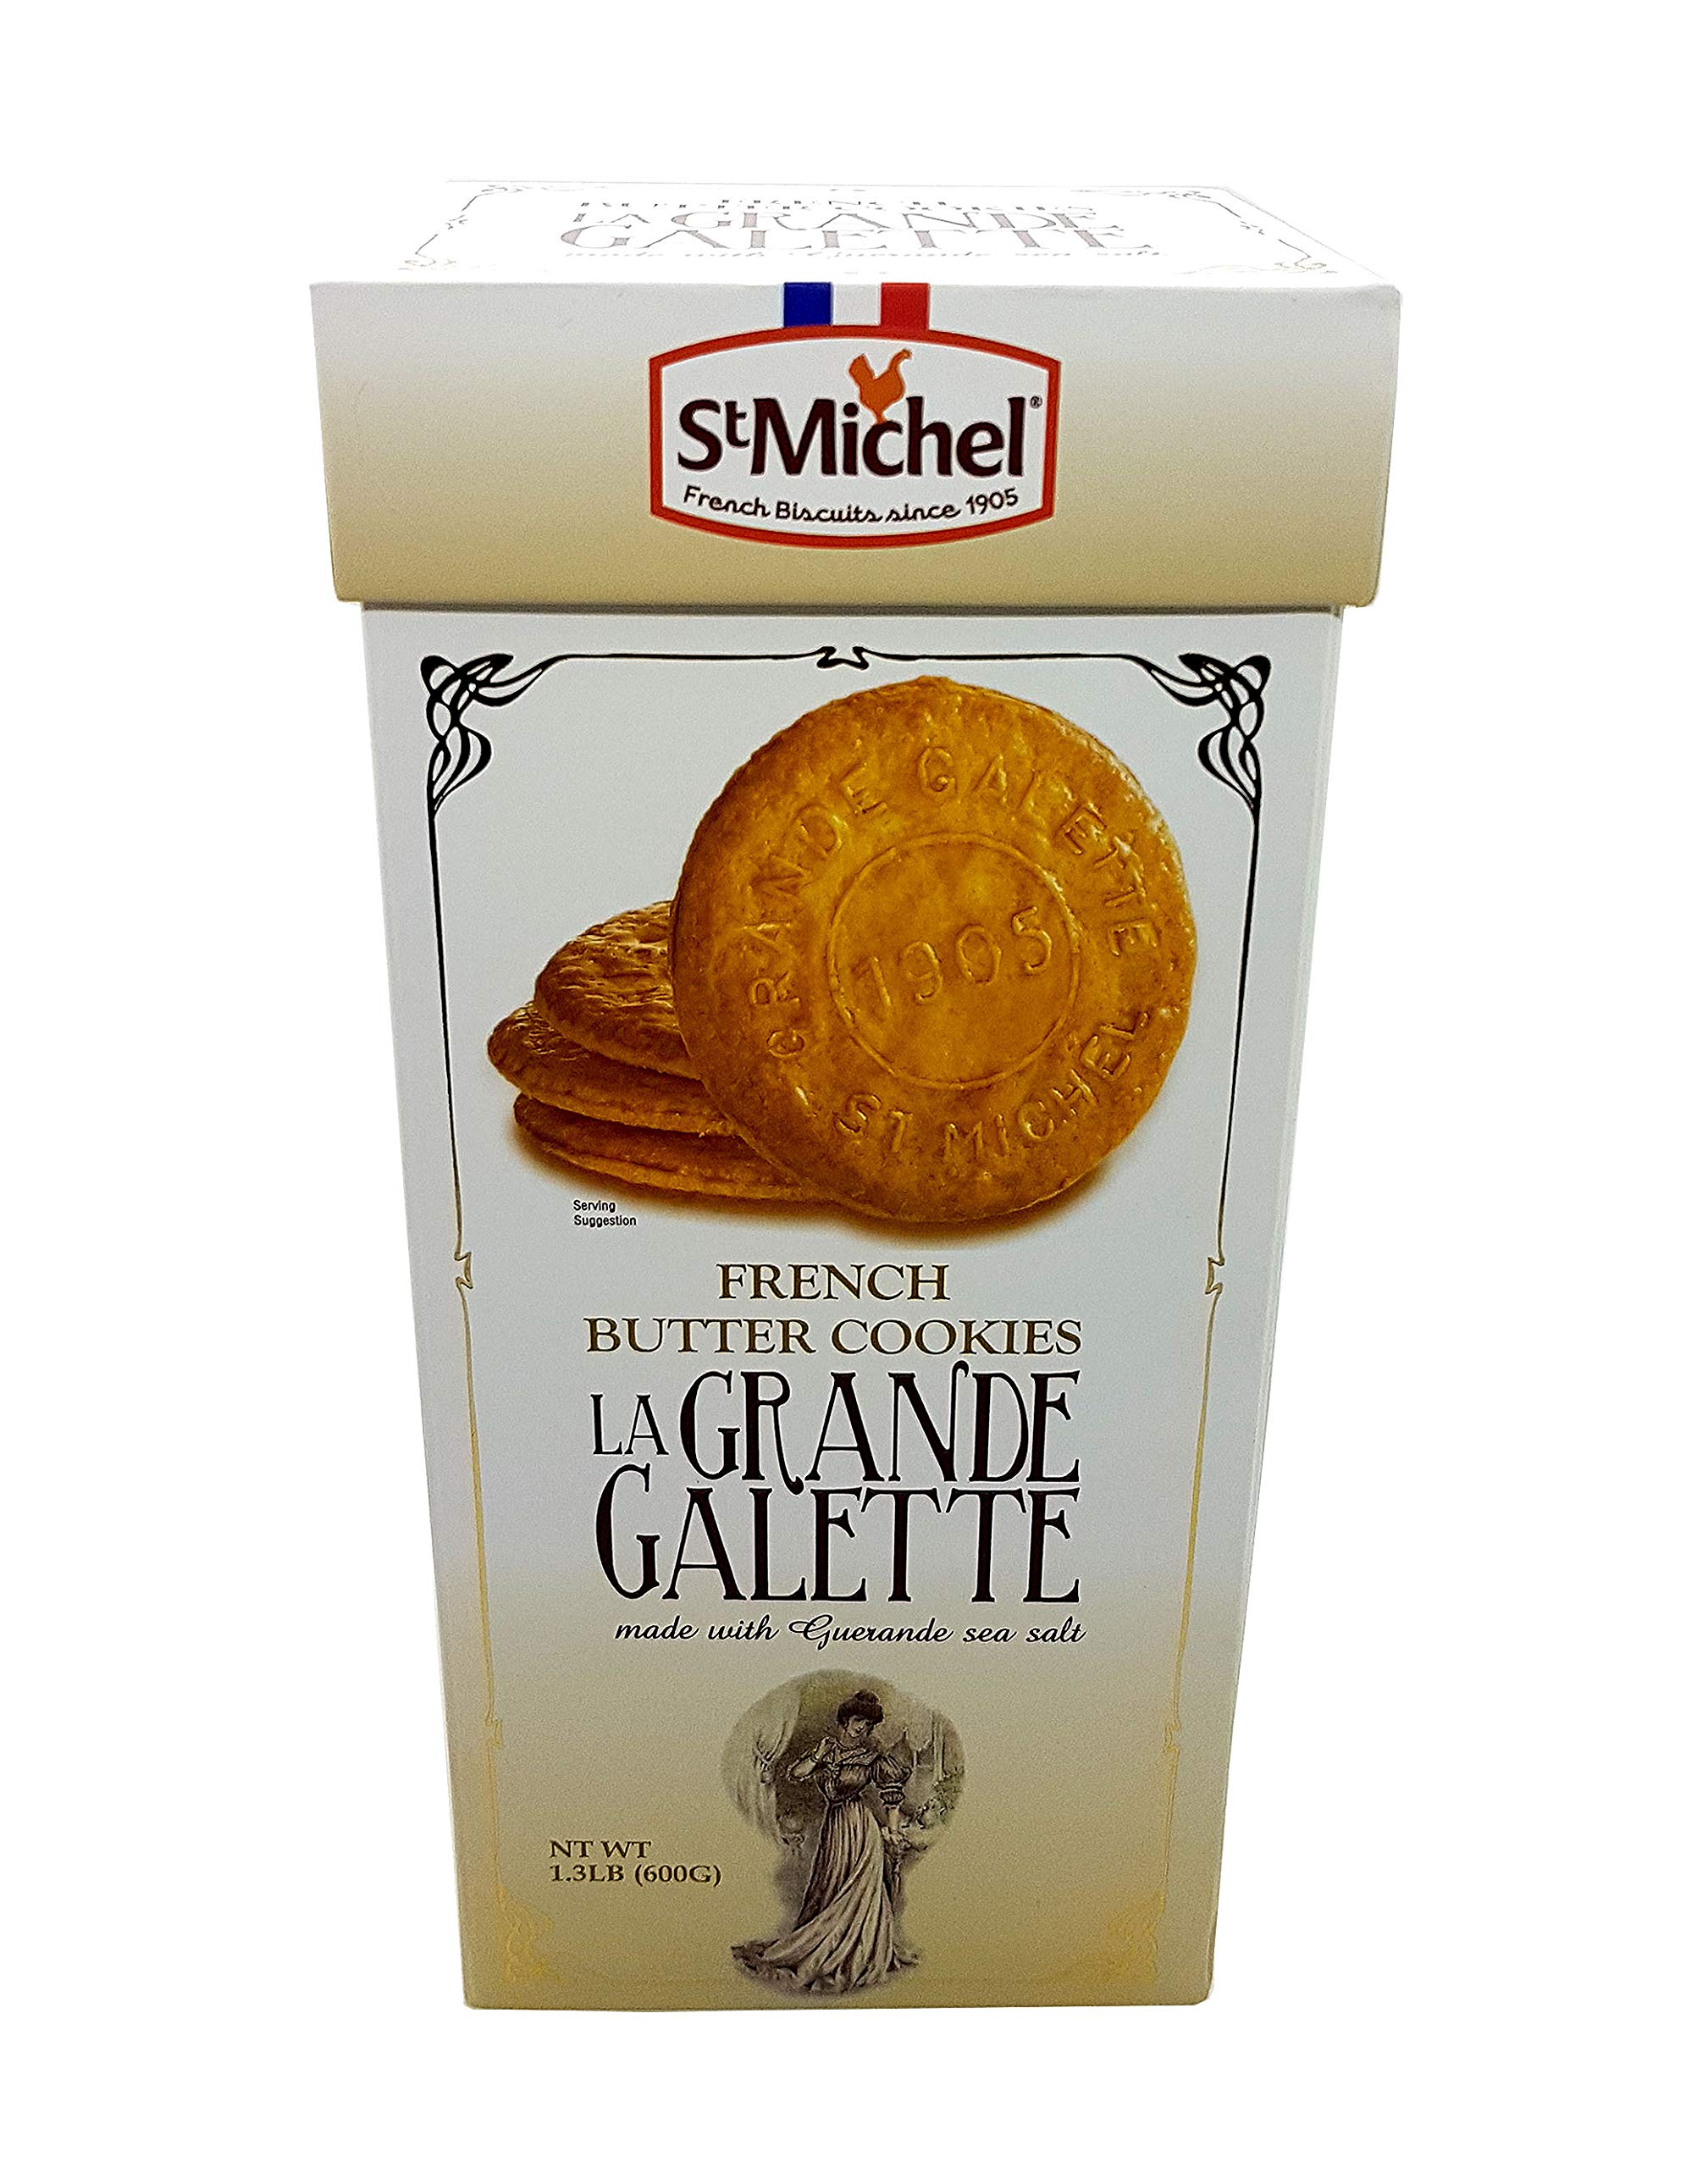 St Michel La Grande Galette French Butter Cookies Biscuits 1.3 LB (Pack of 2) by St Michel (Image #2)